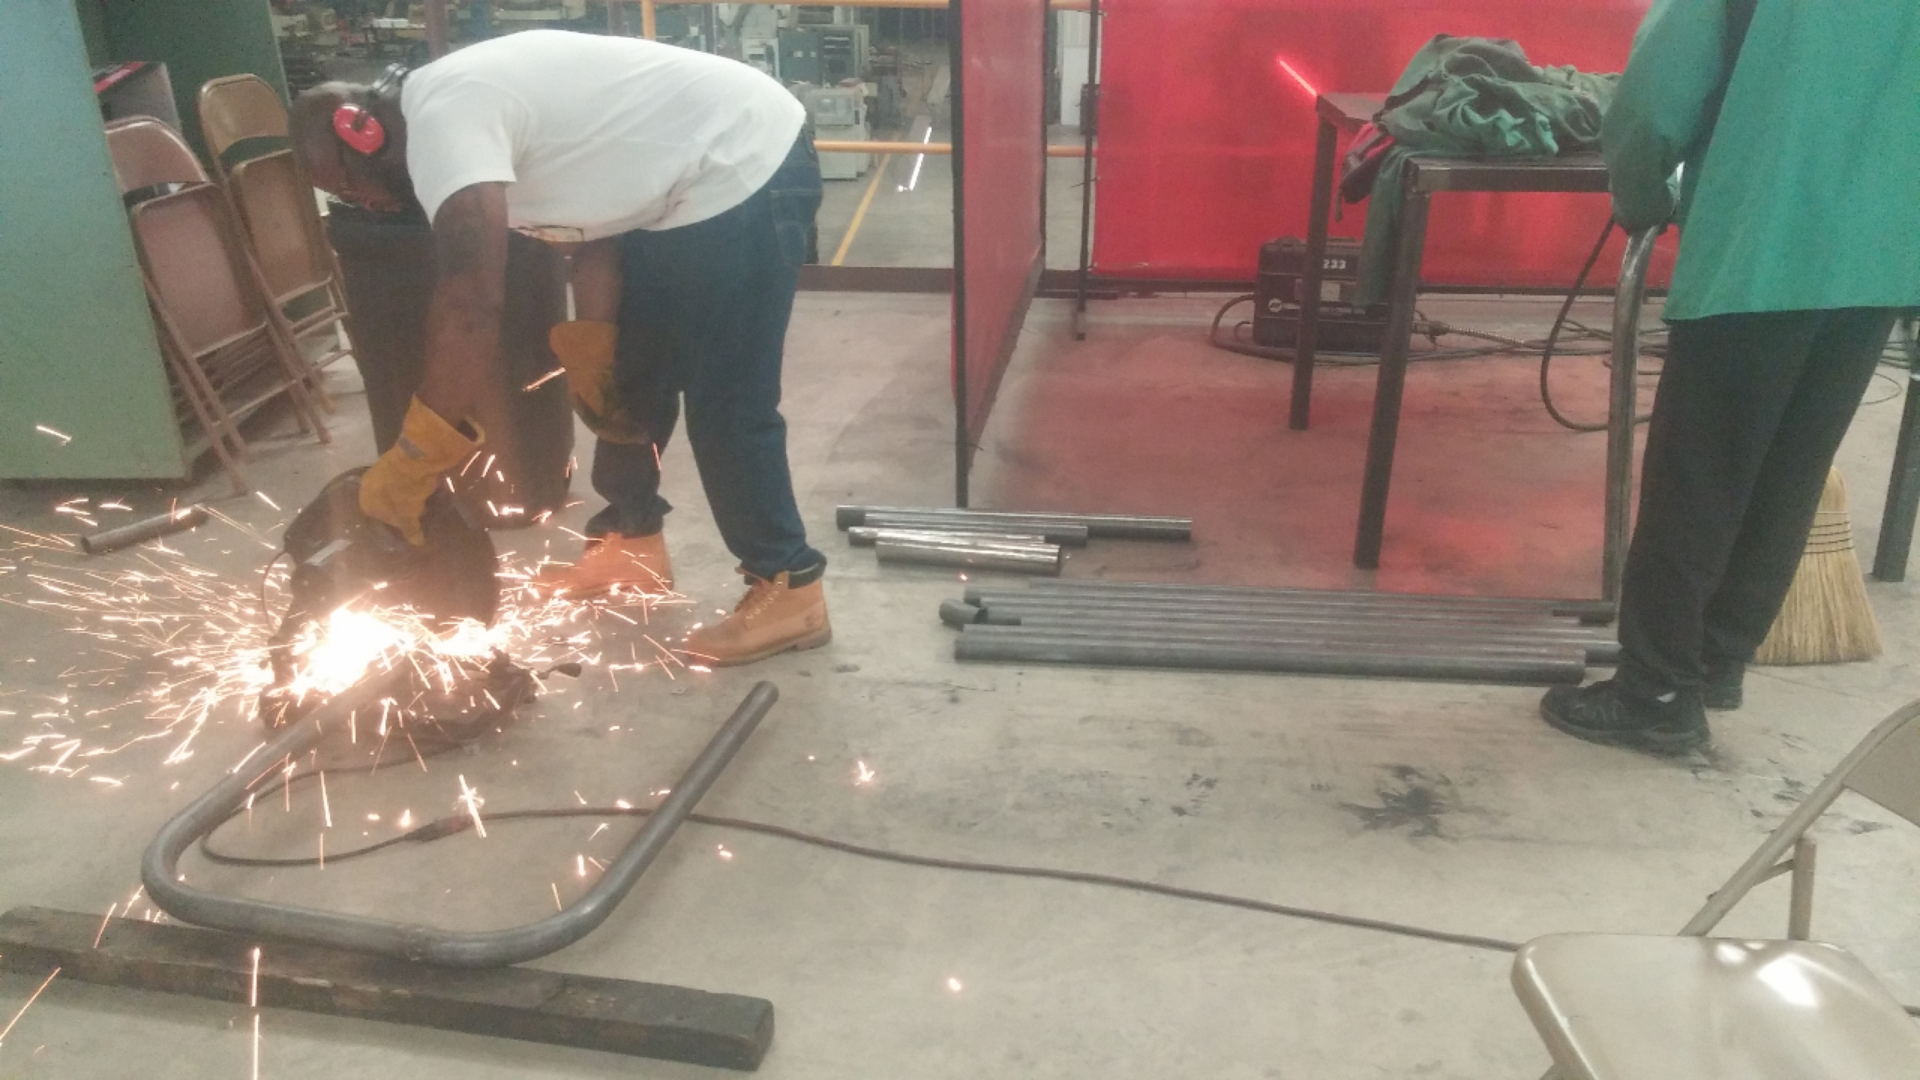 Collaboration At Work: CWI Welding Program